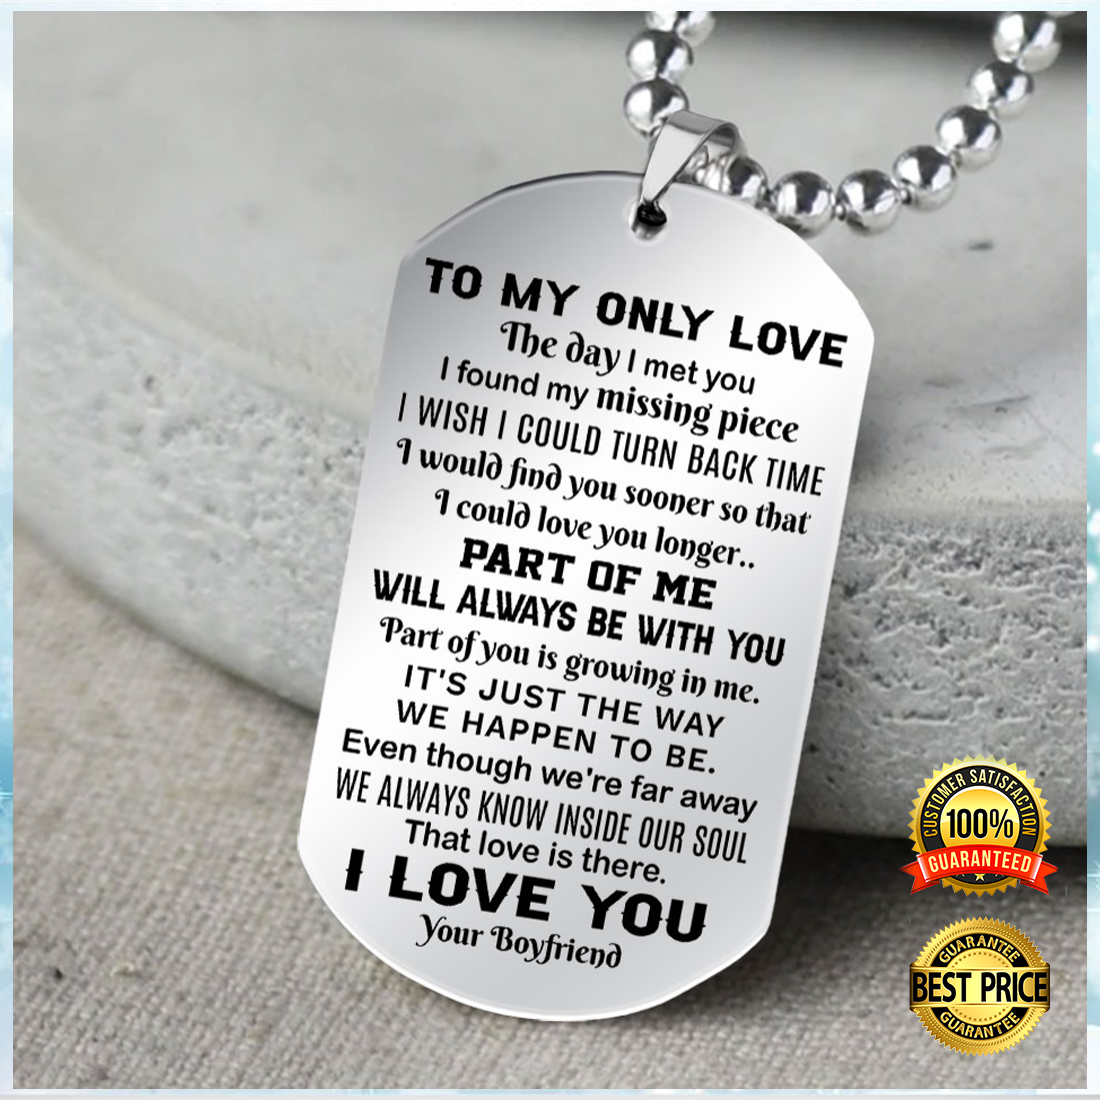 TO MY ONLY LOVE THE DAY I MET YOU I FOUND MY MISSING PIECE DOG TAG 5